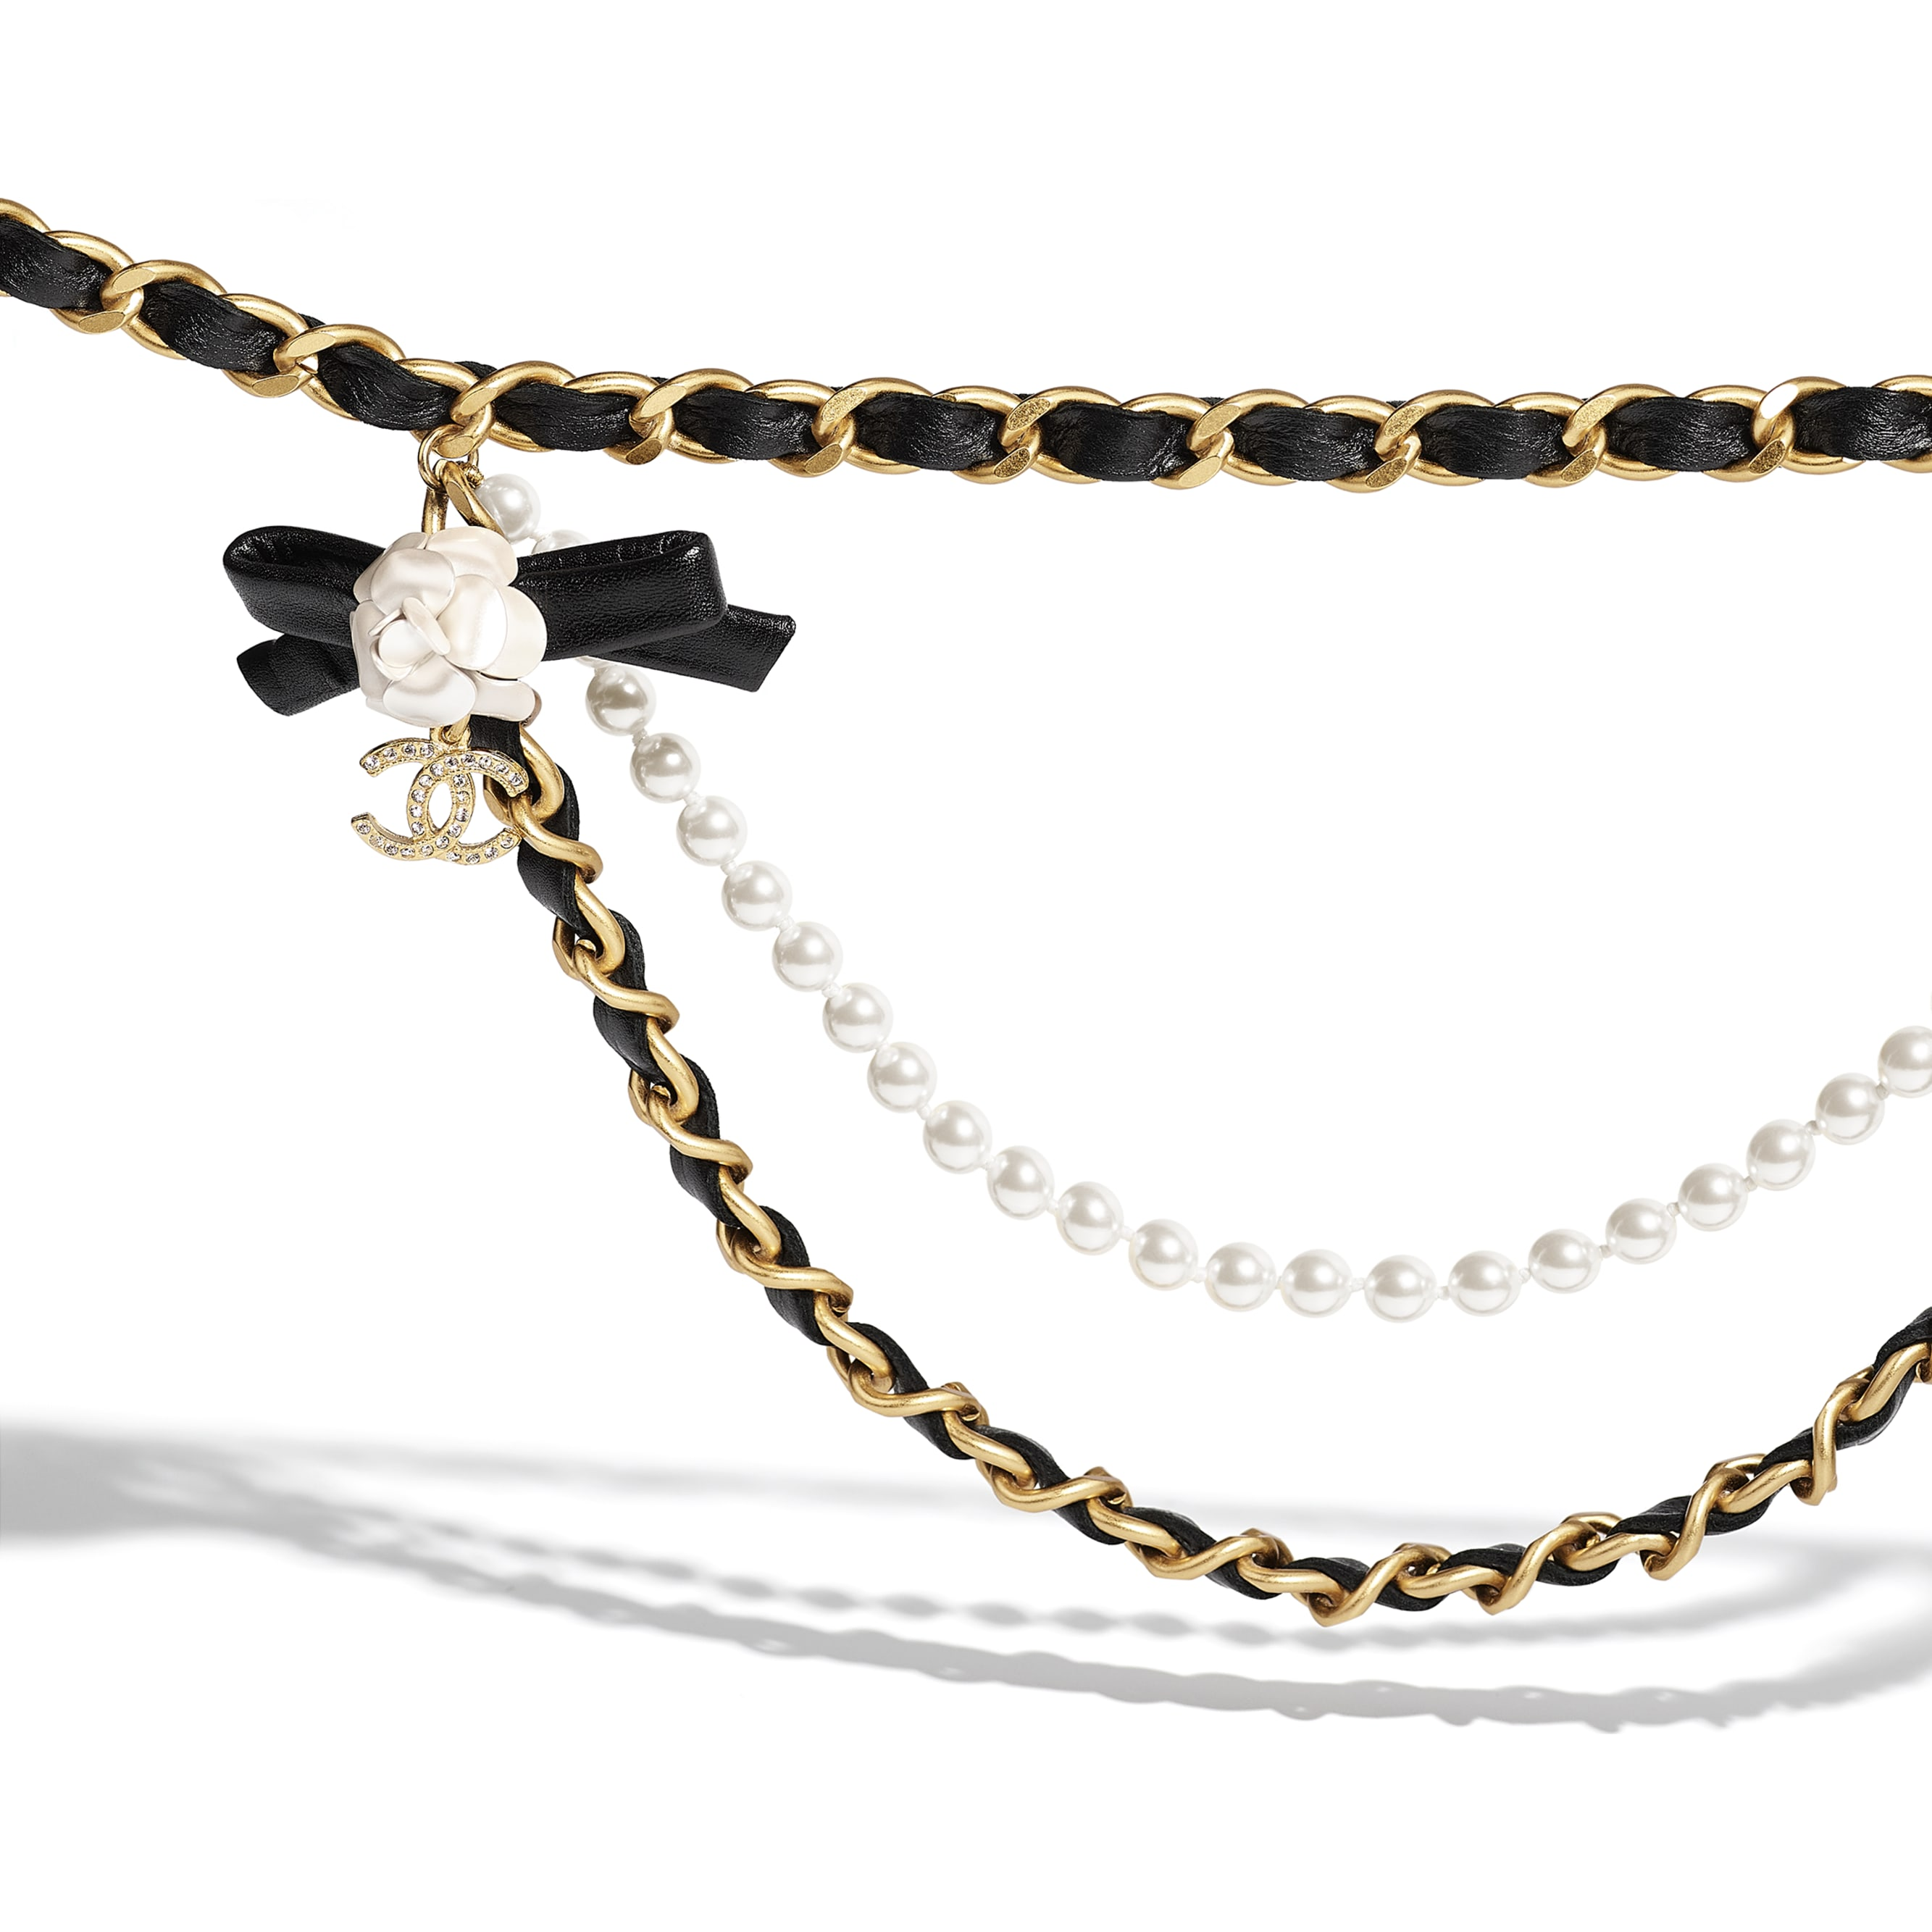 Belt - Gold, Pearly White, Black & Crystal - Metal, glass pearls, calfskin & diamanté - CHANEL - Alternative view - see standard sized version